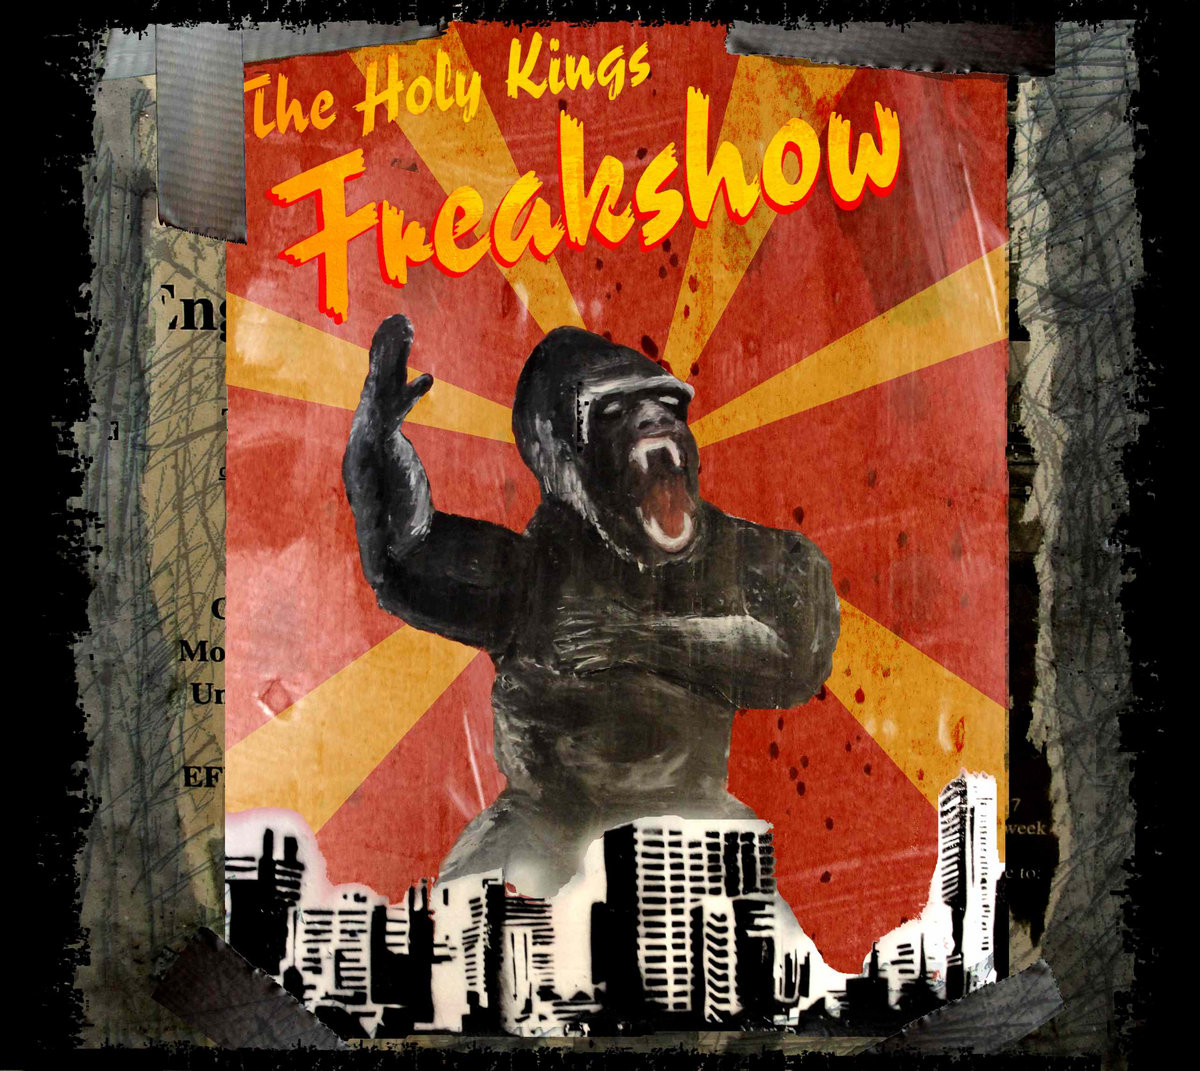 The Holy Kings – Freakshow (2011) [FLAC]